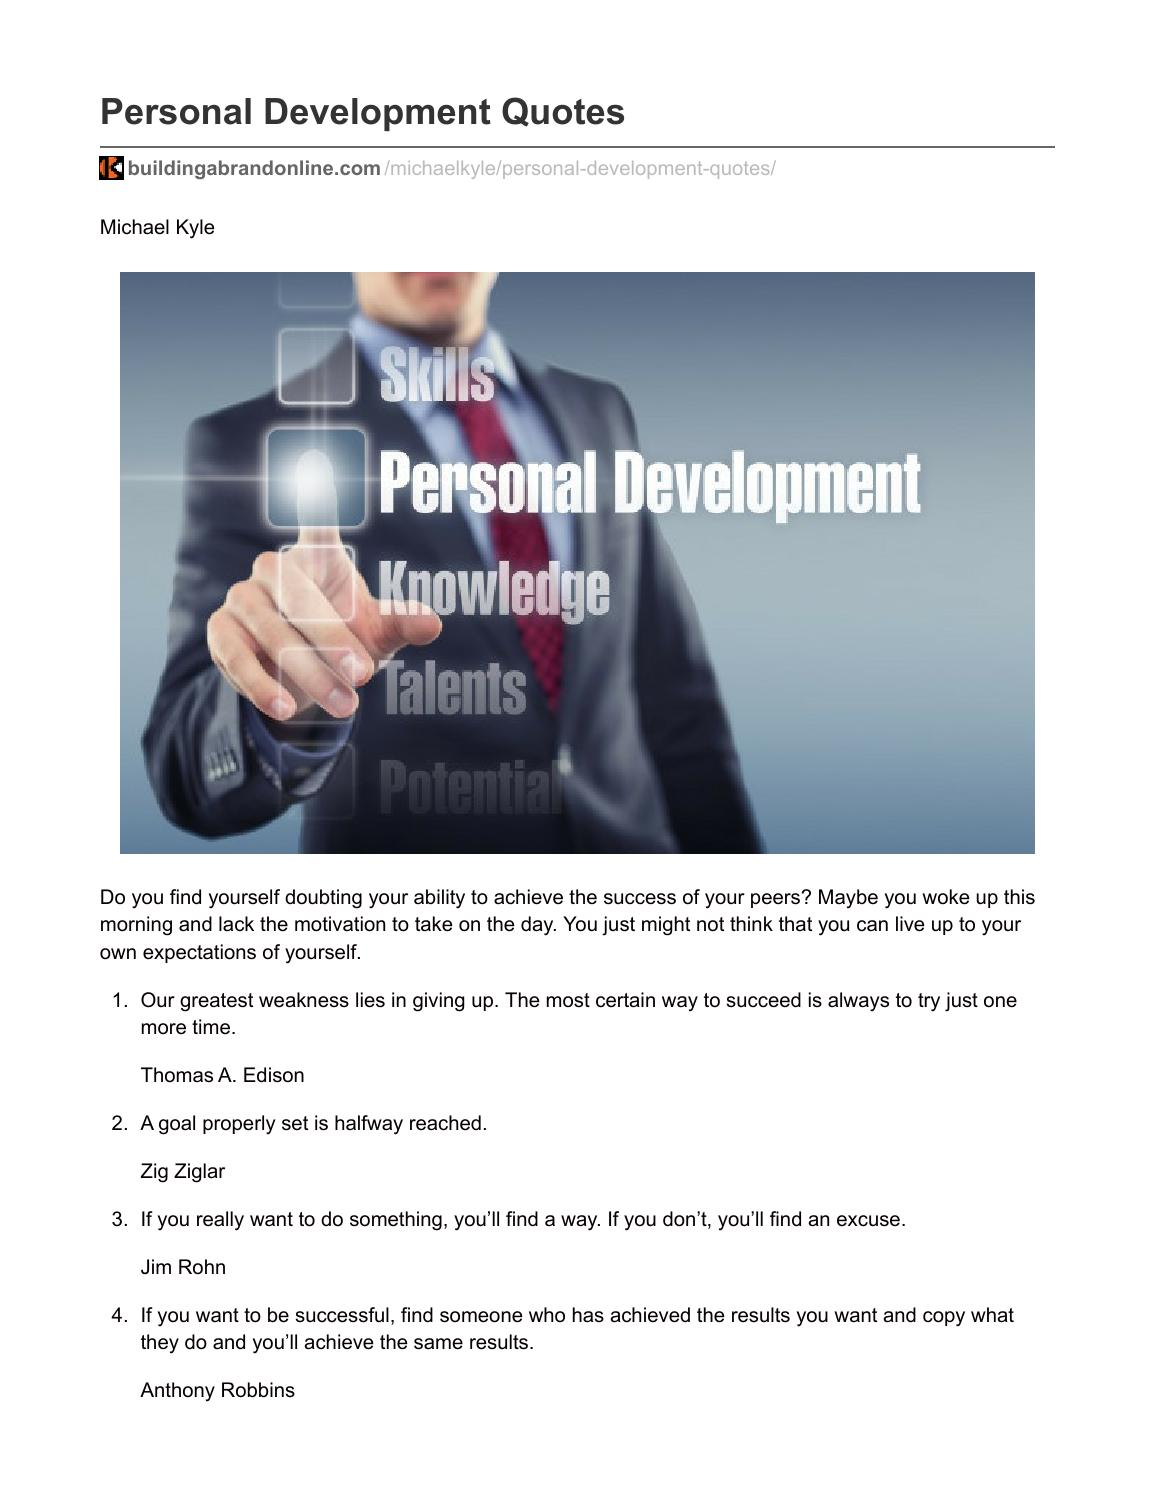 Personal Development Quotes Personal Development Quotesmichael Kyle  Issuu